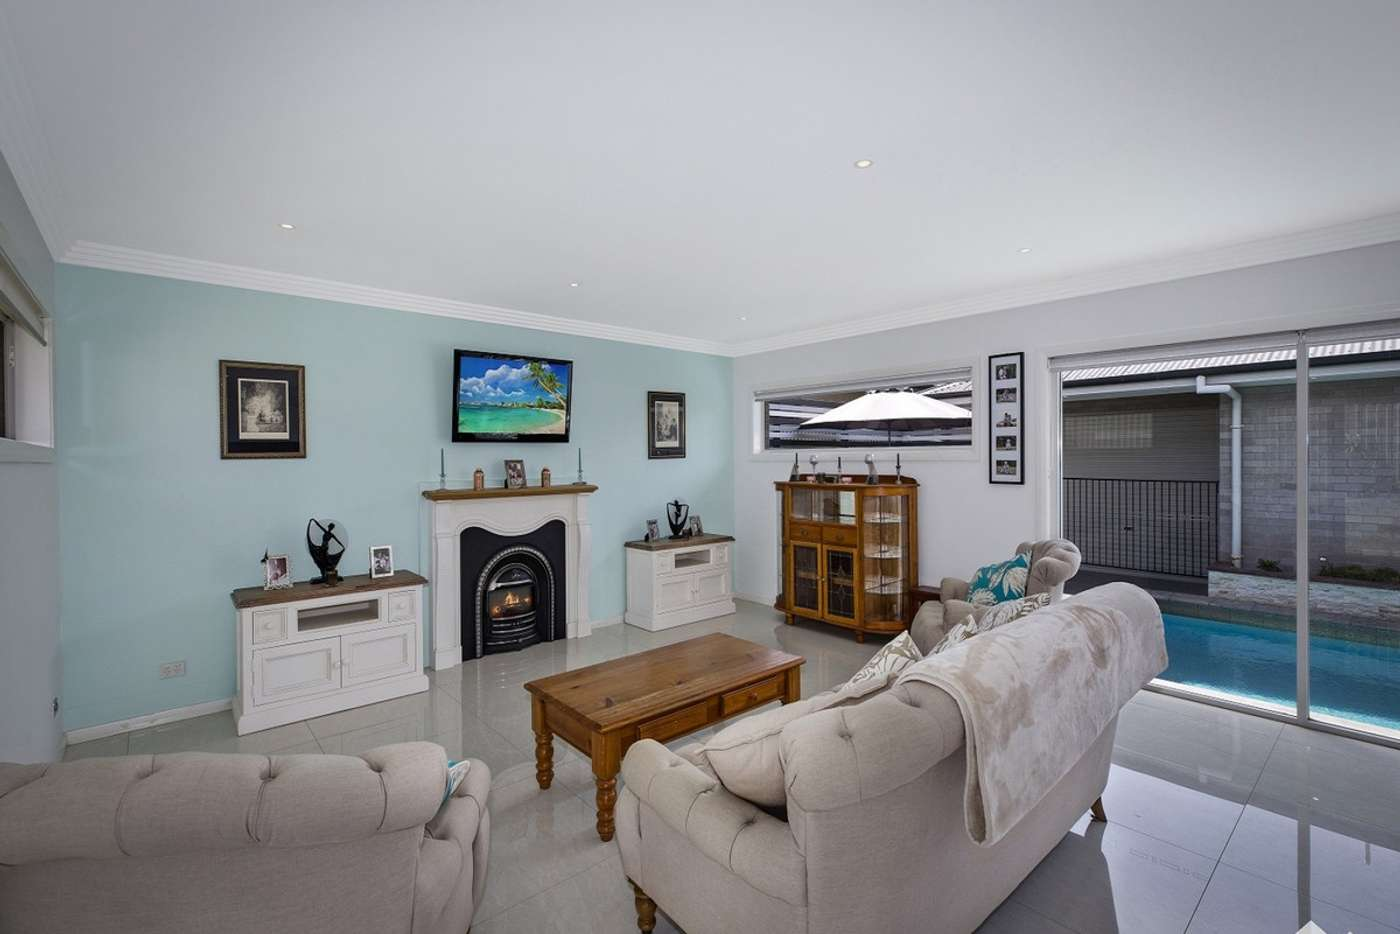 Fifth view of Homely house listing, 2 Windward Crescent, Gwandalan NSW 2259